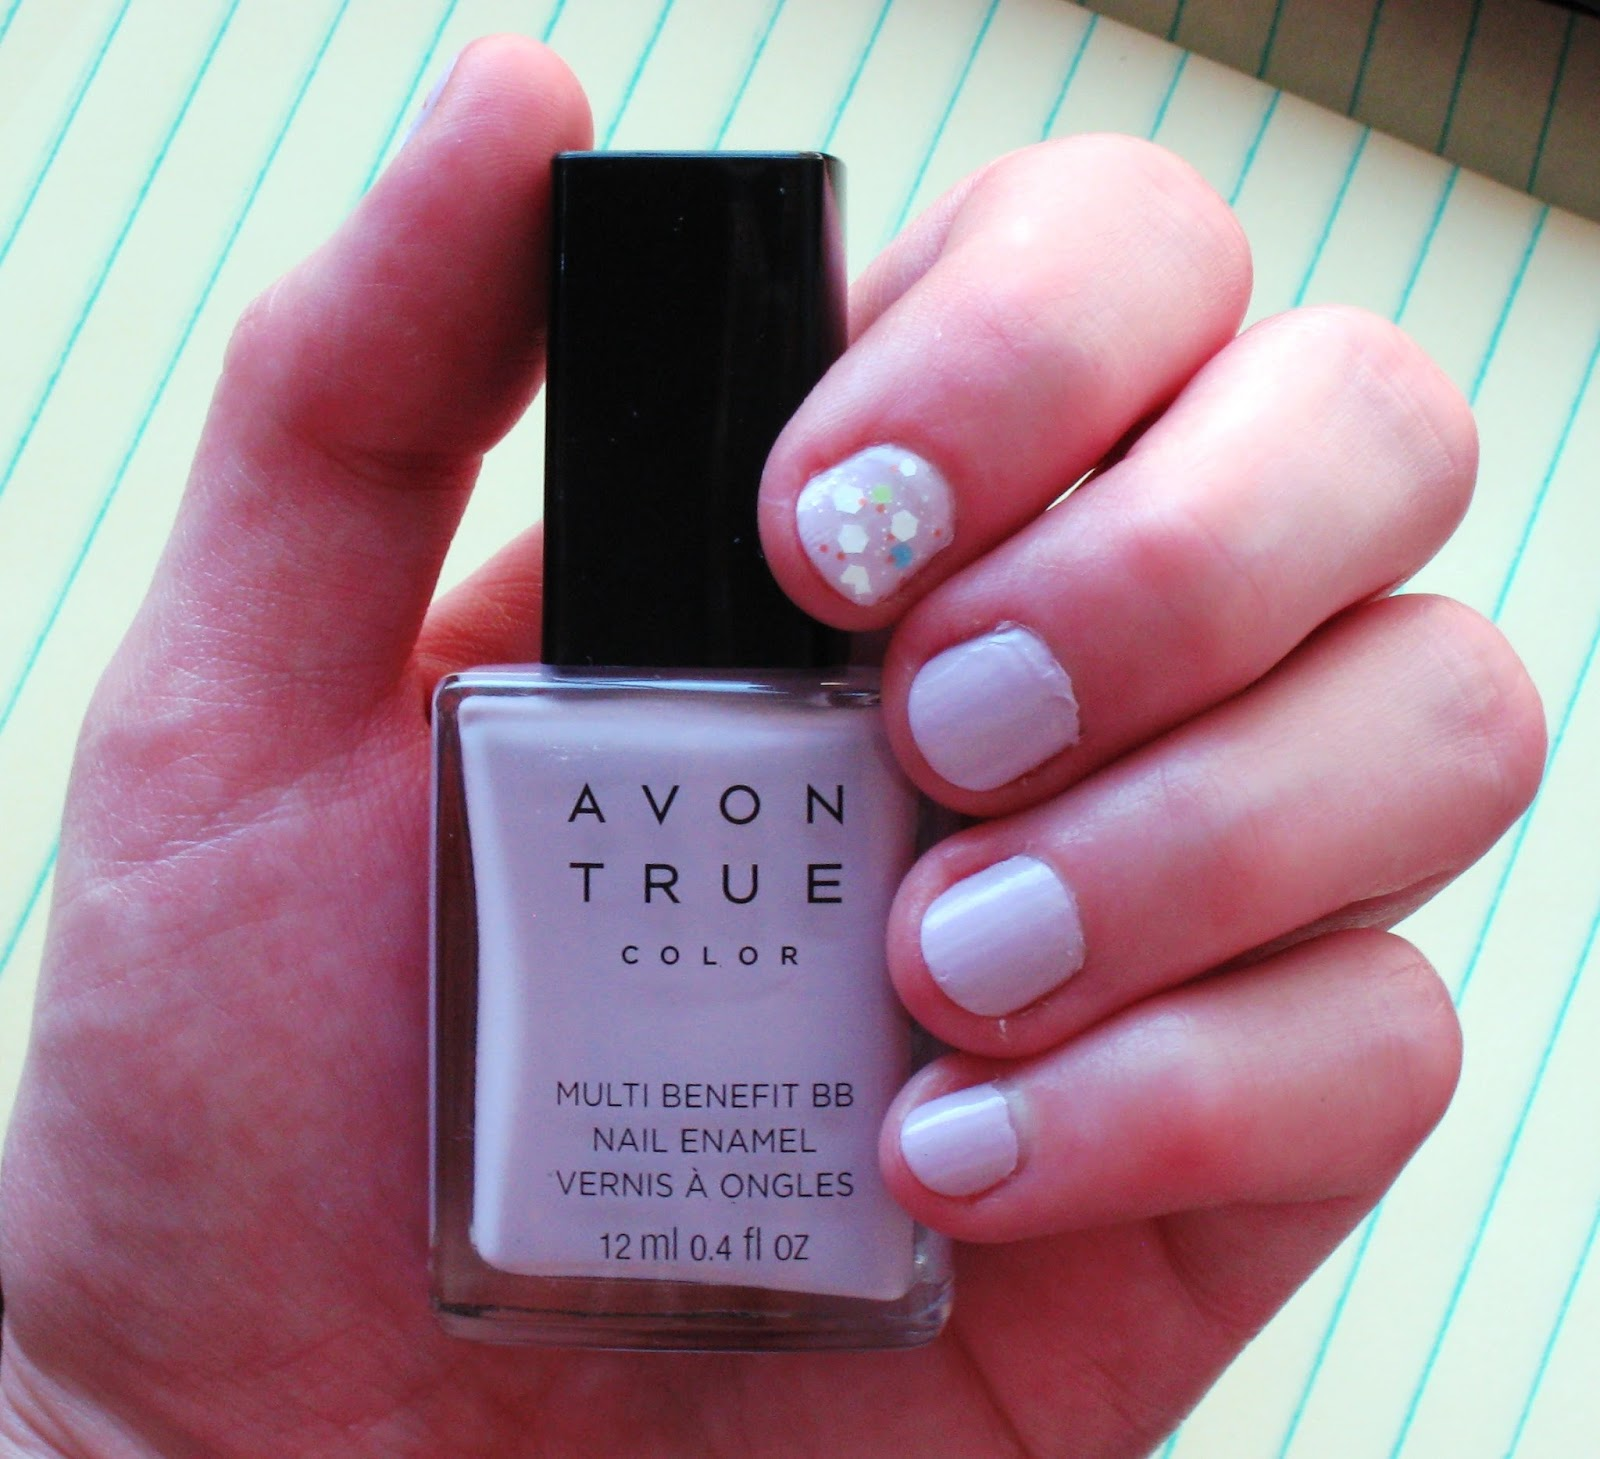 Avon Pink Nail Polish: Erica's Fashion & Beauty: Avon True Color Multi-Benefit BB